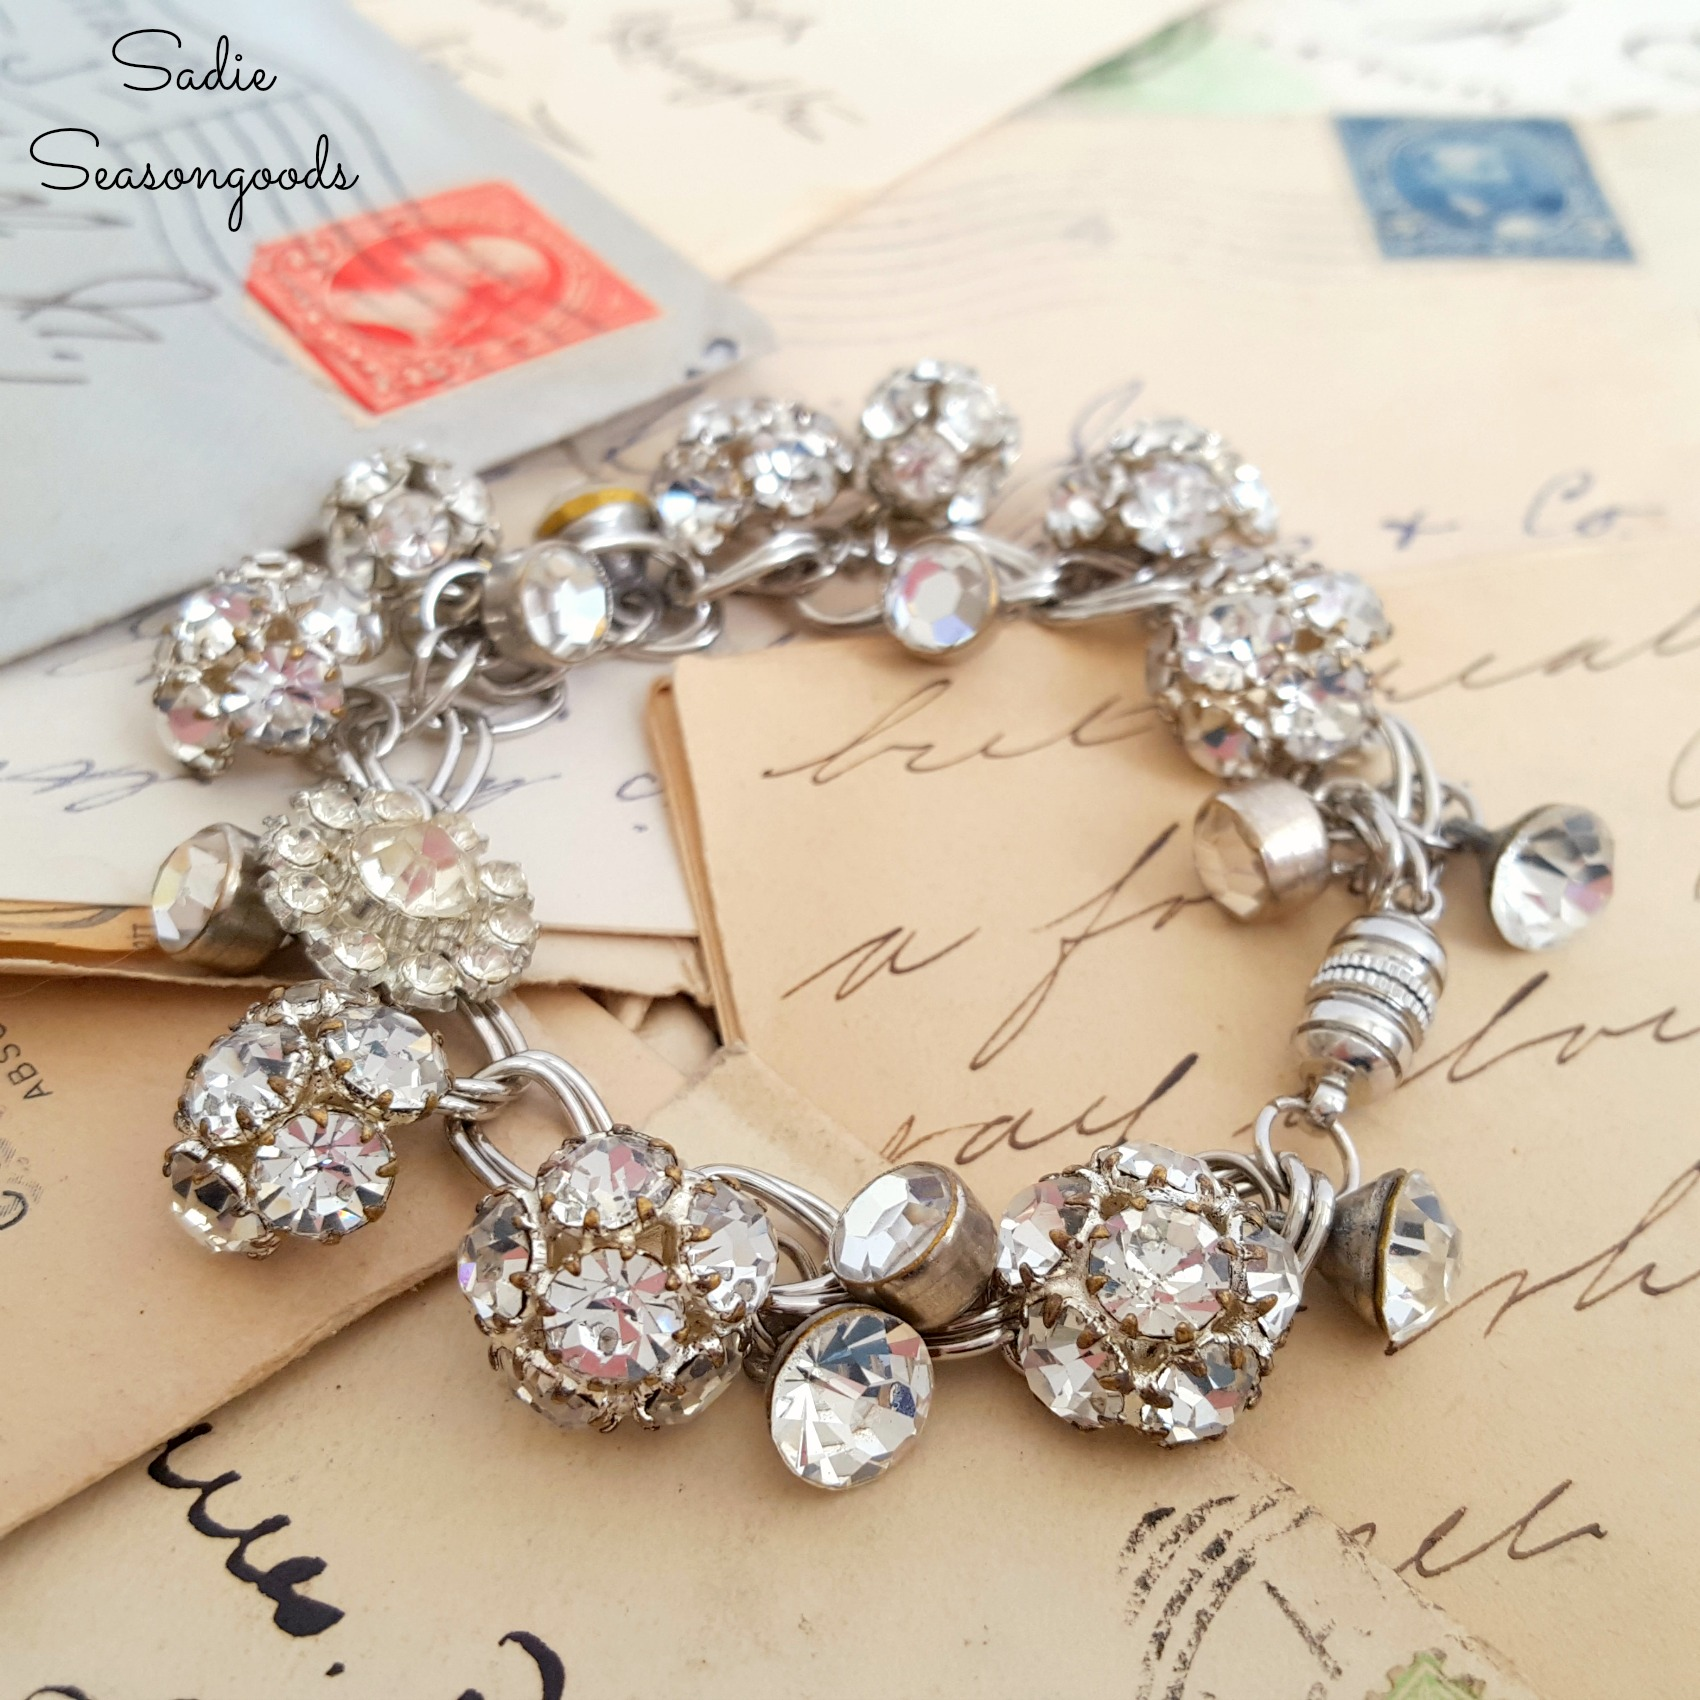 Vintage button rhinestone bracelet, by Sadie Seasongoods, featured on Funky Junk Interiors